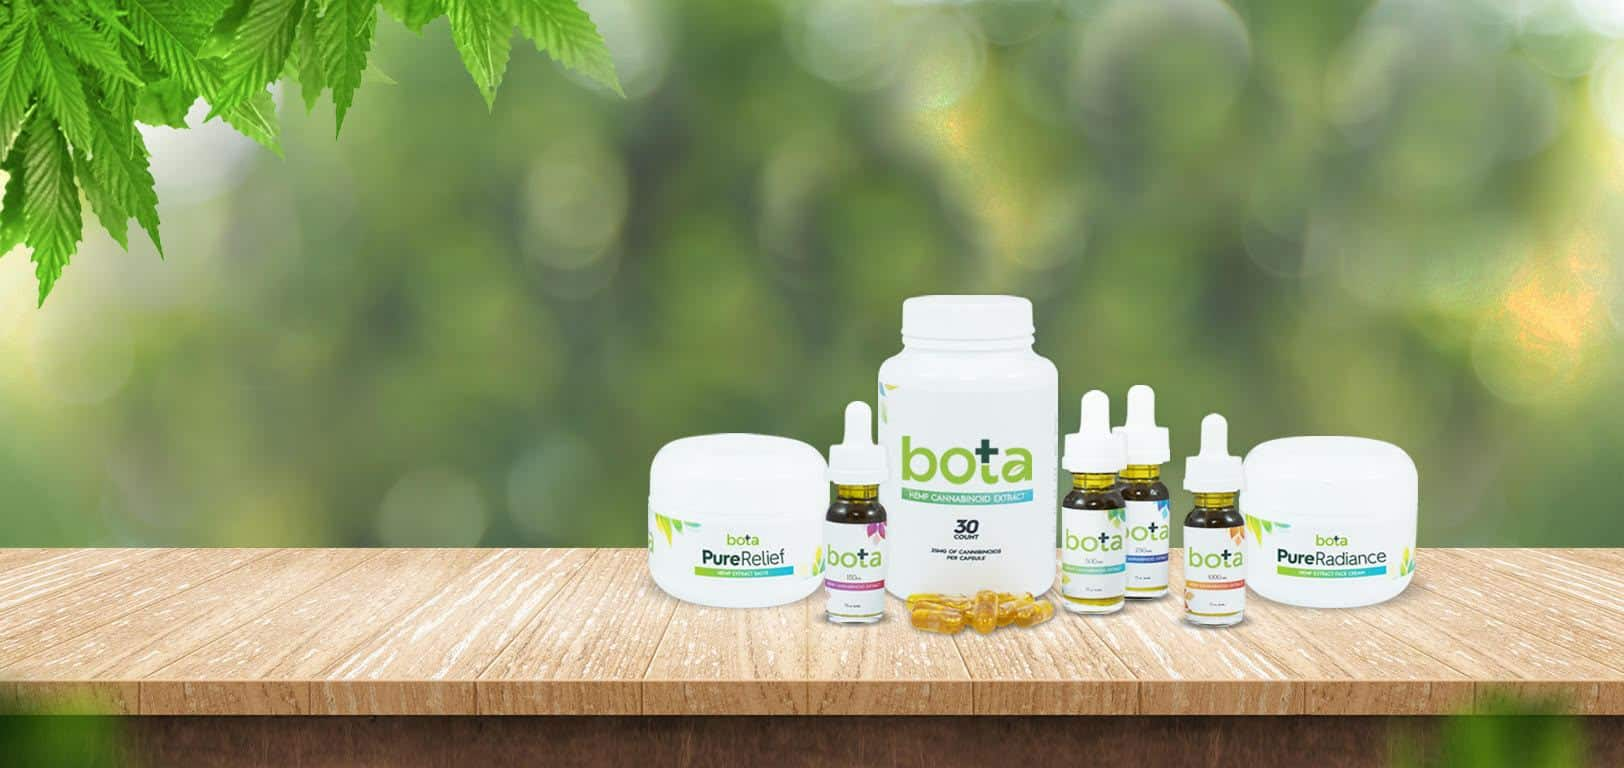 Bota Hemp Coupon Codes Discounts Promos Save On Cannabis